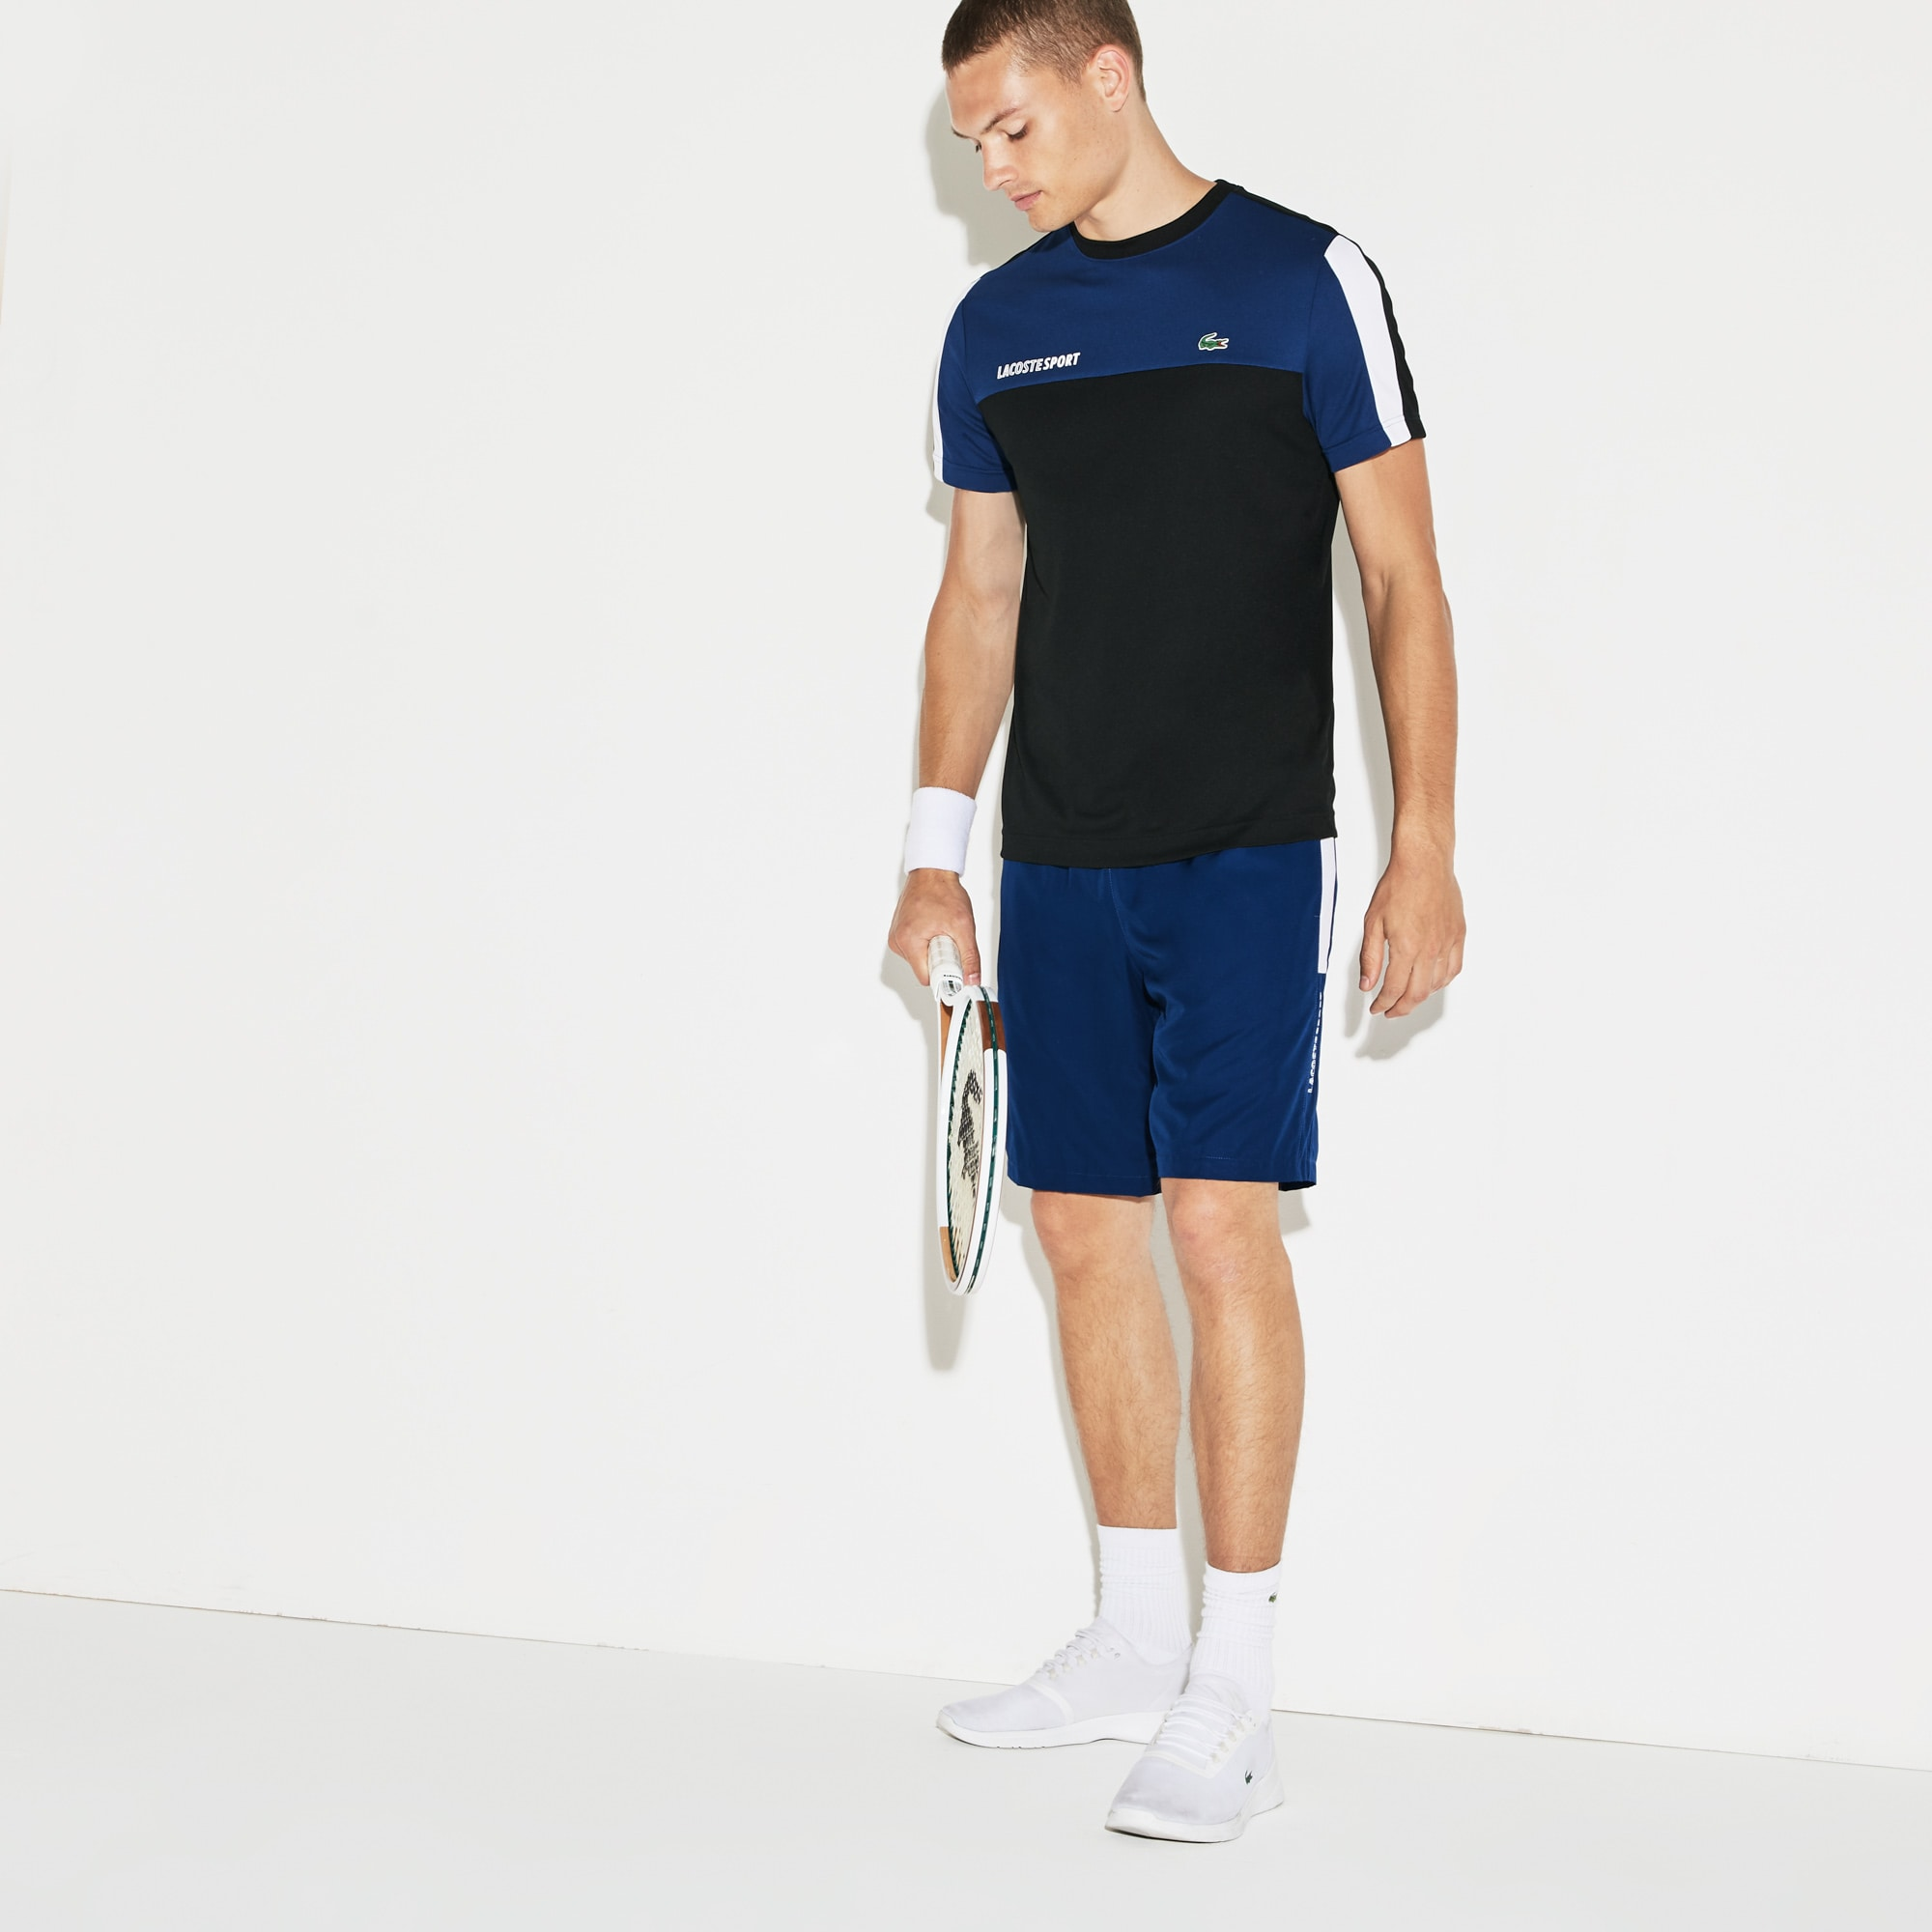 Men´s Lacoste SPORT Colored Bands Taffeta Tennis Shorts Size 2 - XS Navy  Blue   Black   White   White 6b7a1bb66ab